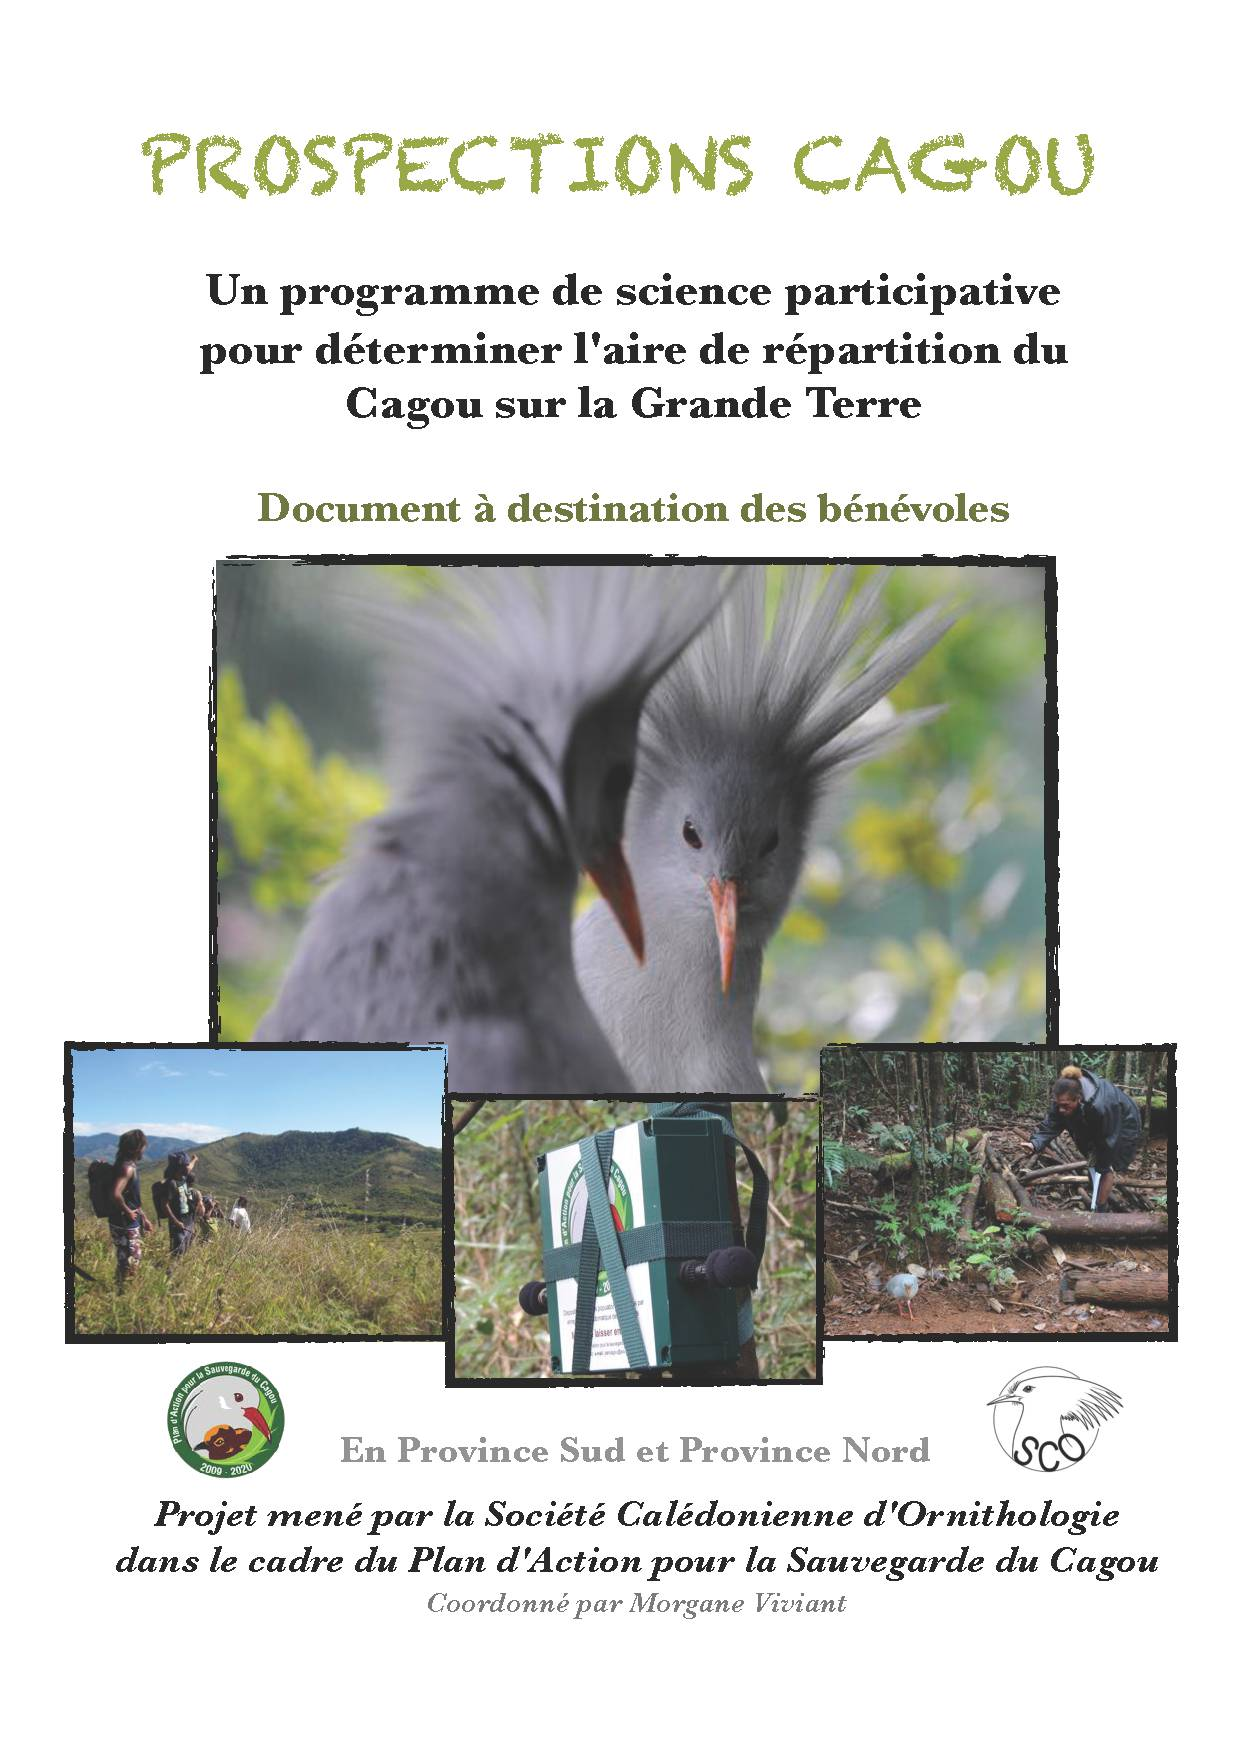 p1 Projet PROSPECTION CAGOU 2014 - Programme de science participative R